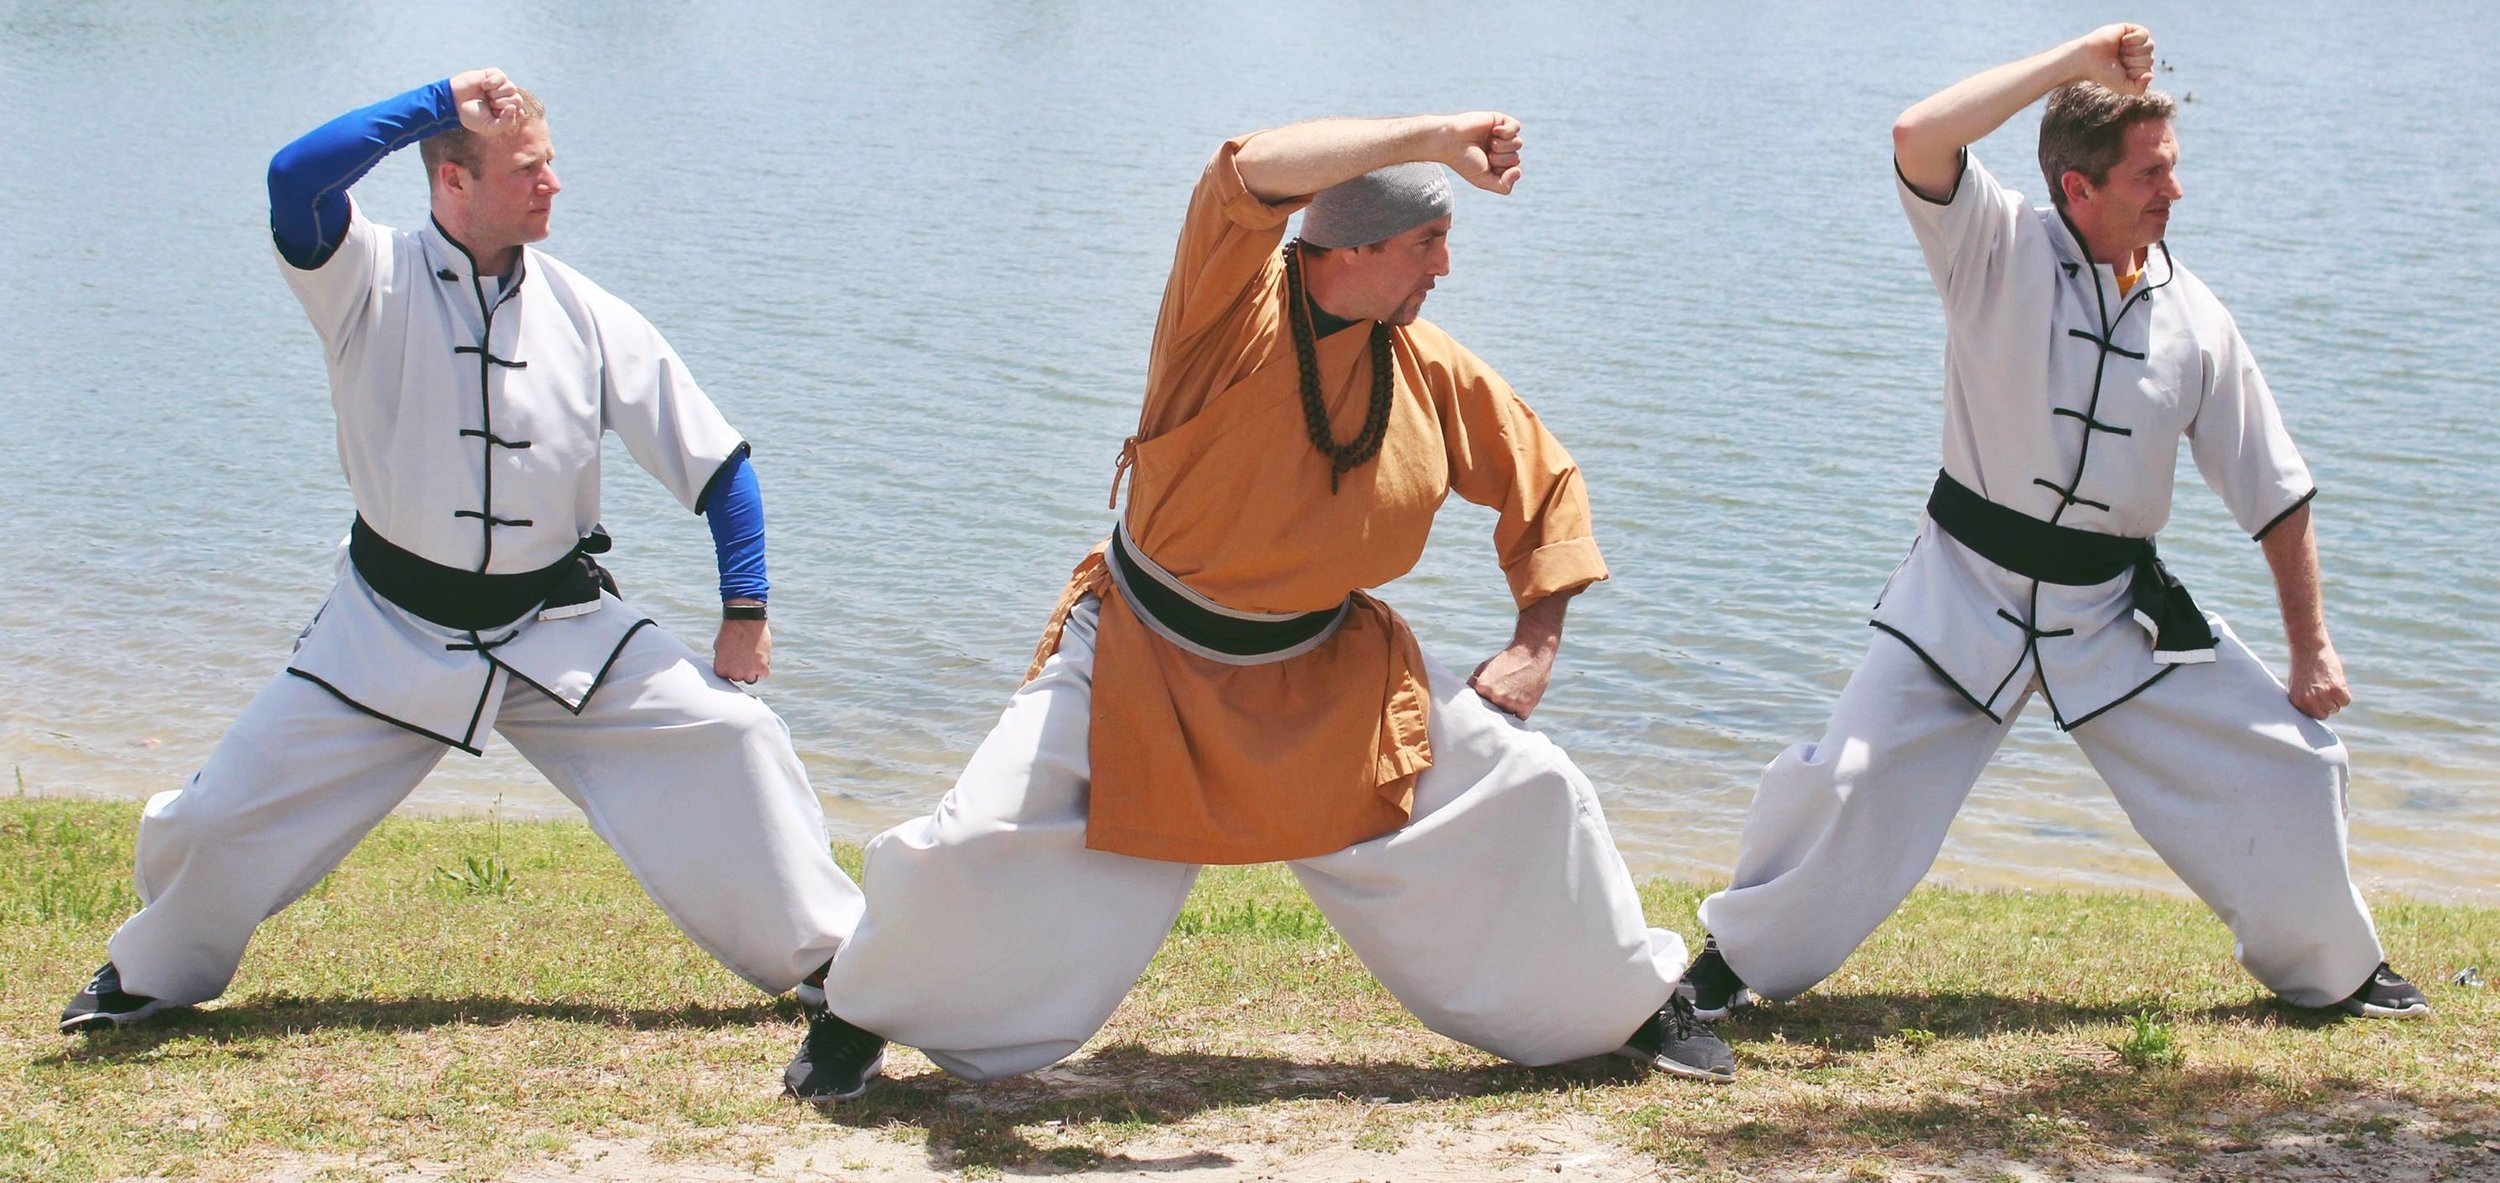 shigung and laoshis.jpg